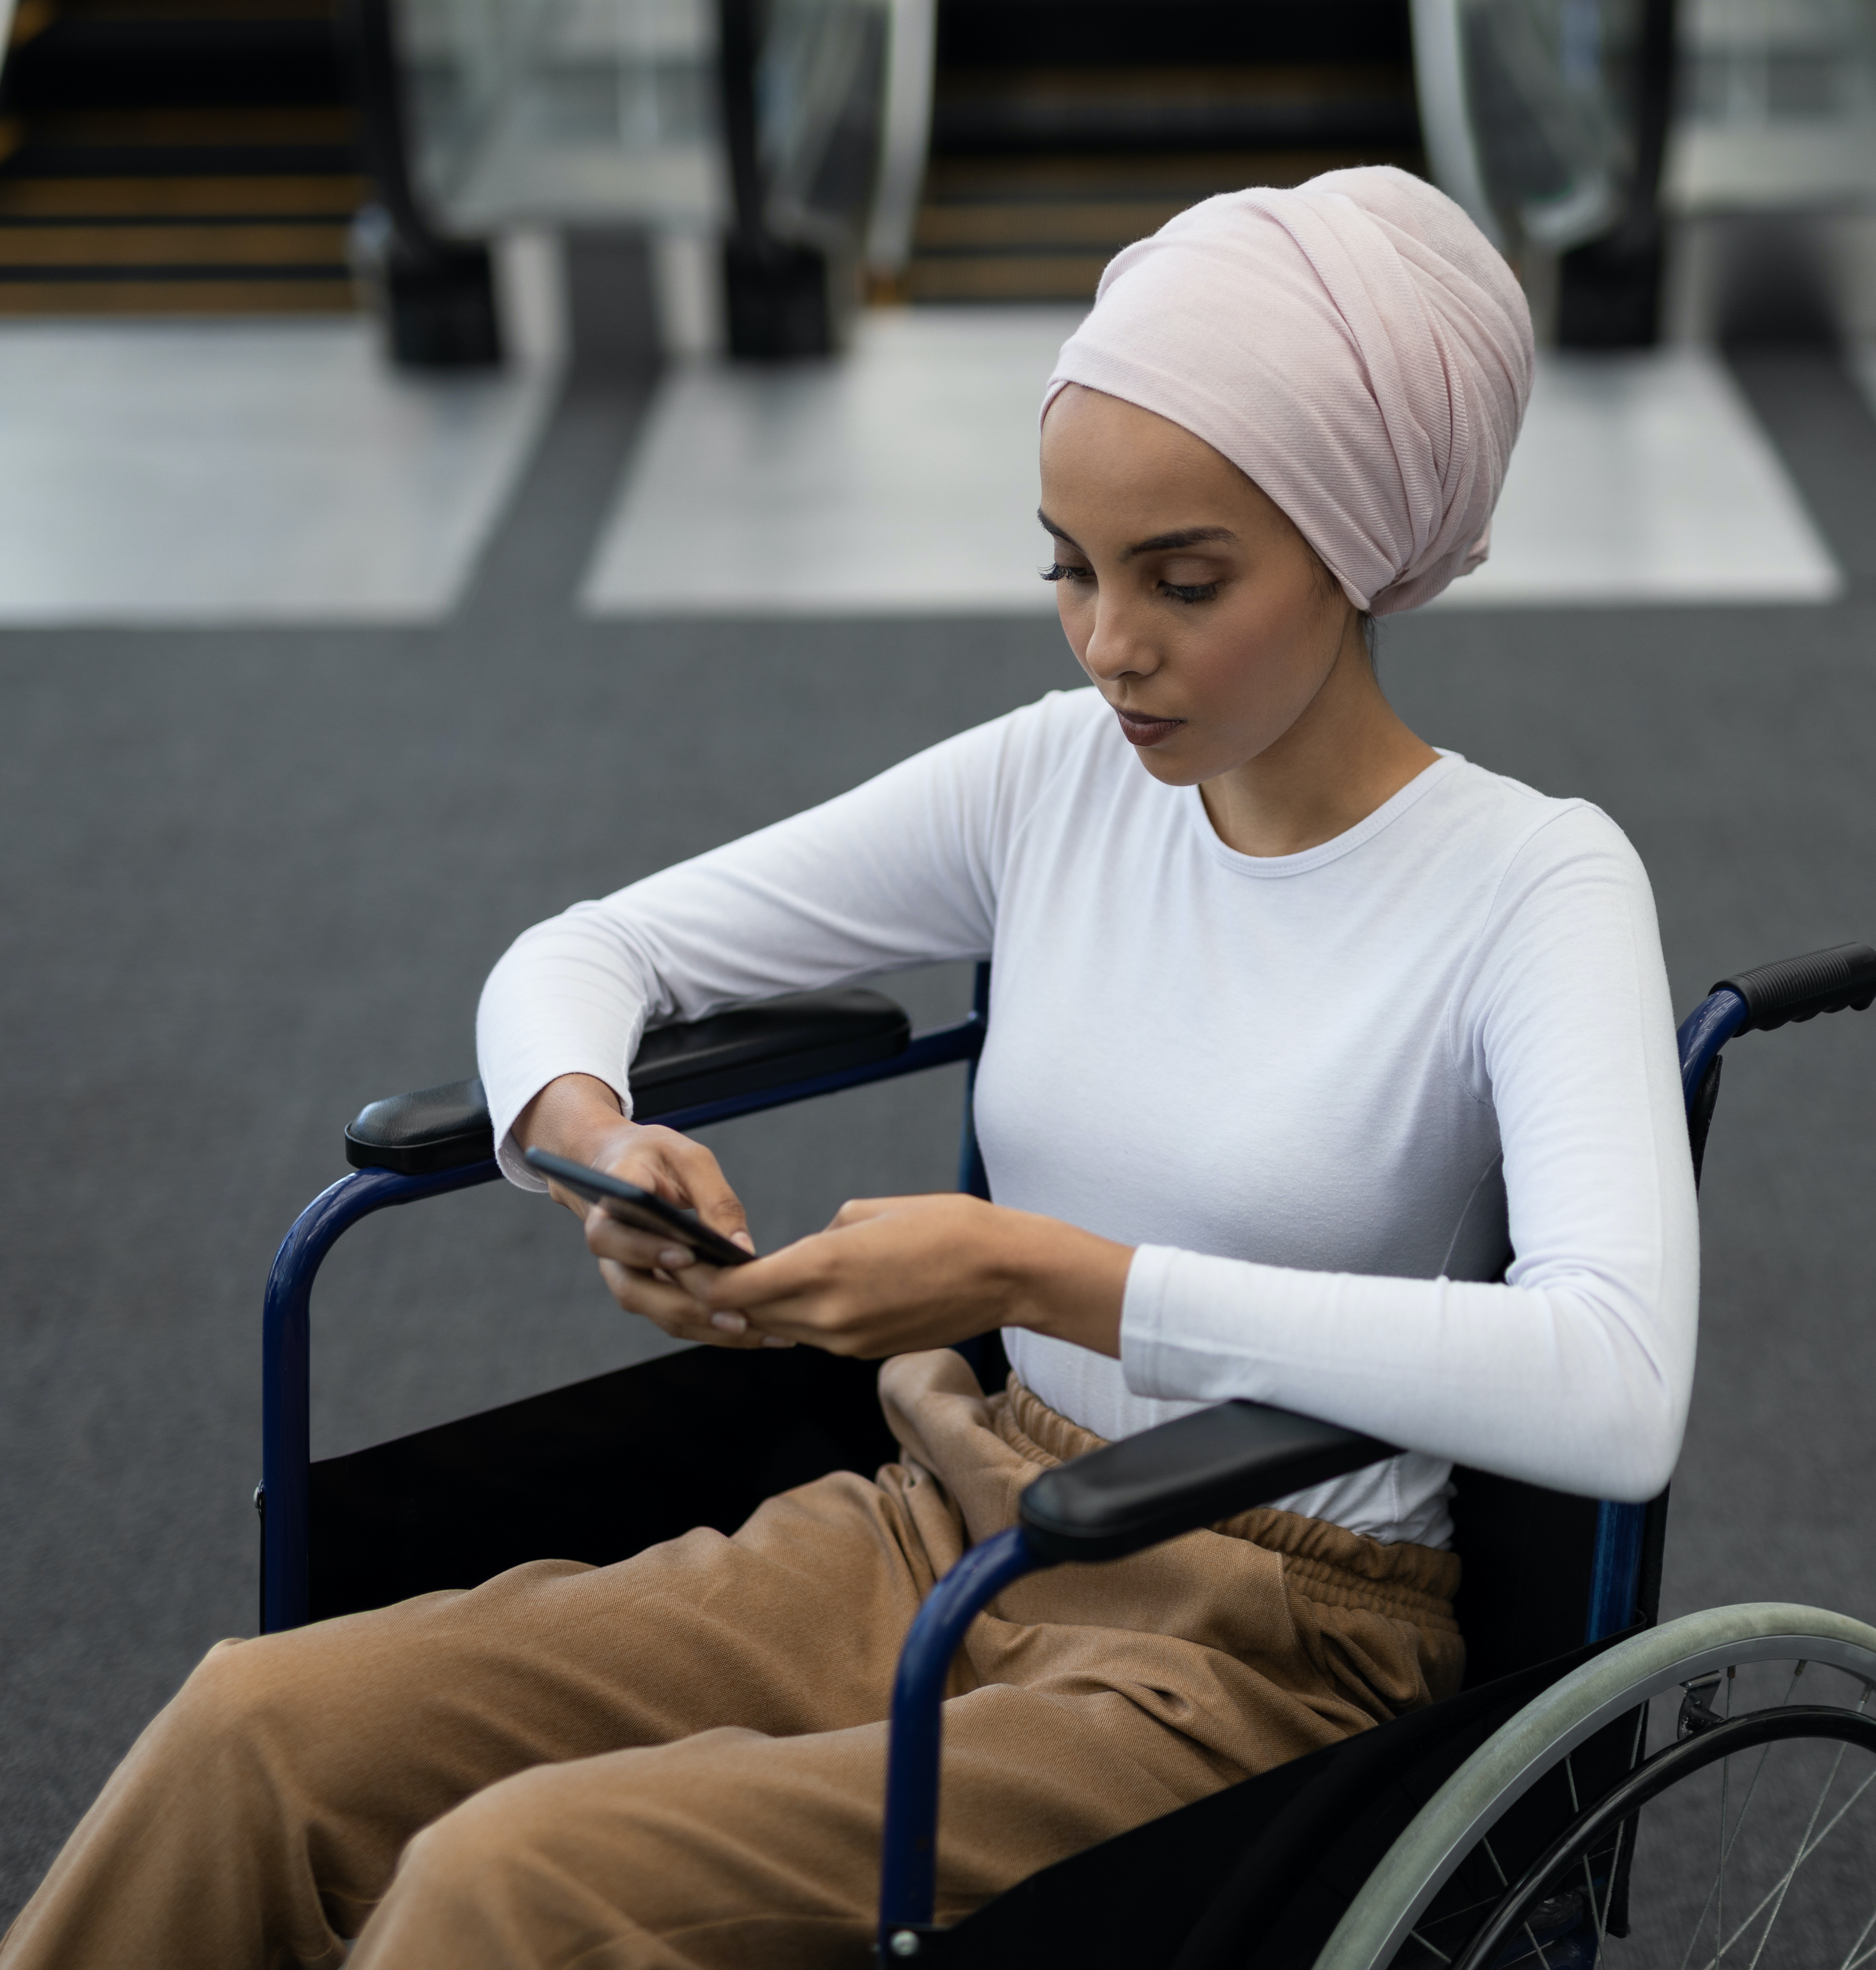 Woman in wheelchair checking phone